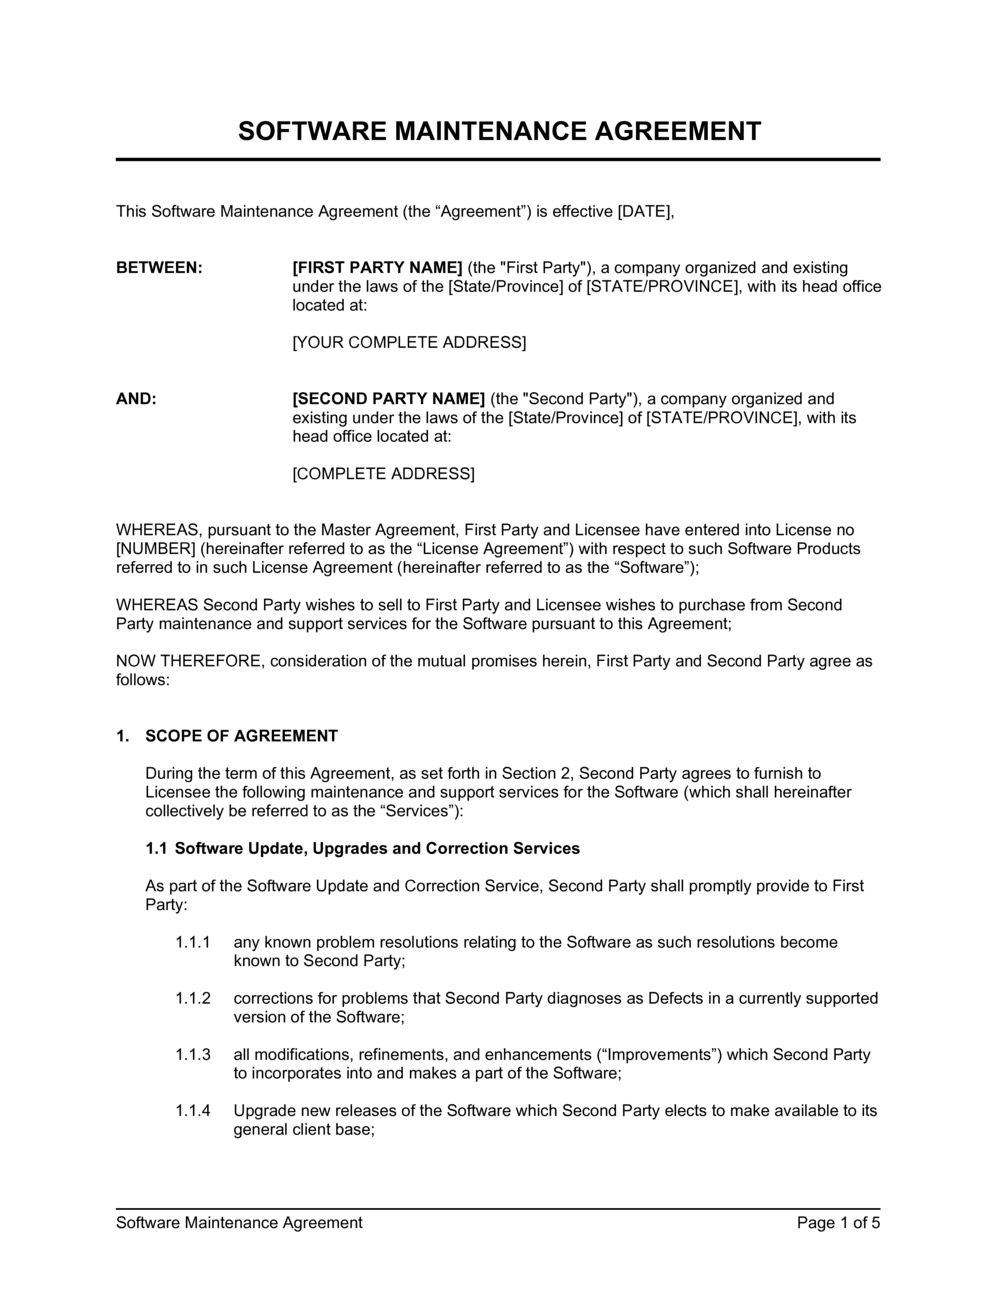 Business-in-a-Box's Software Maintenance Agreement 2 Template